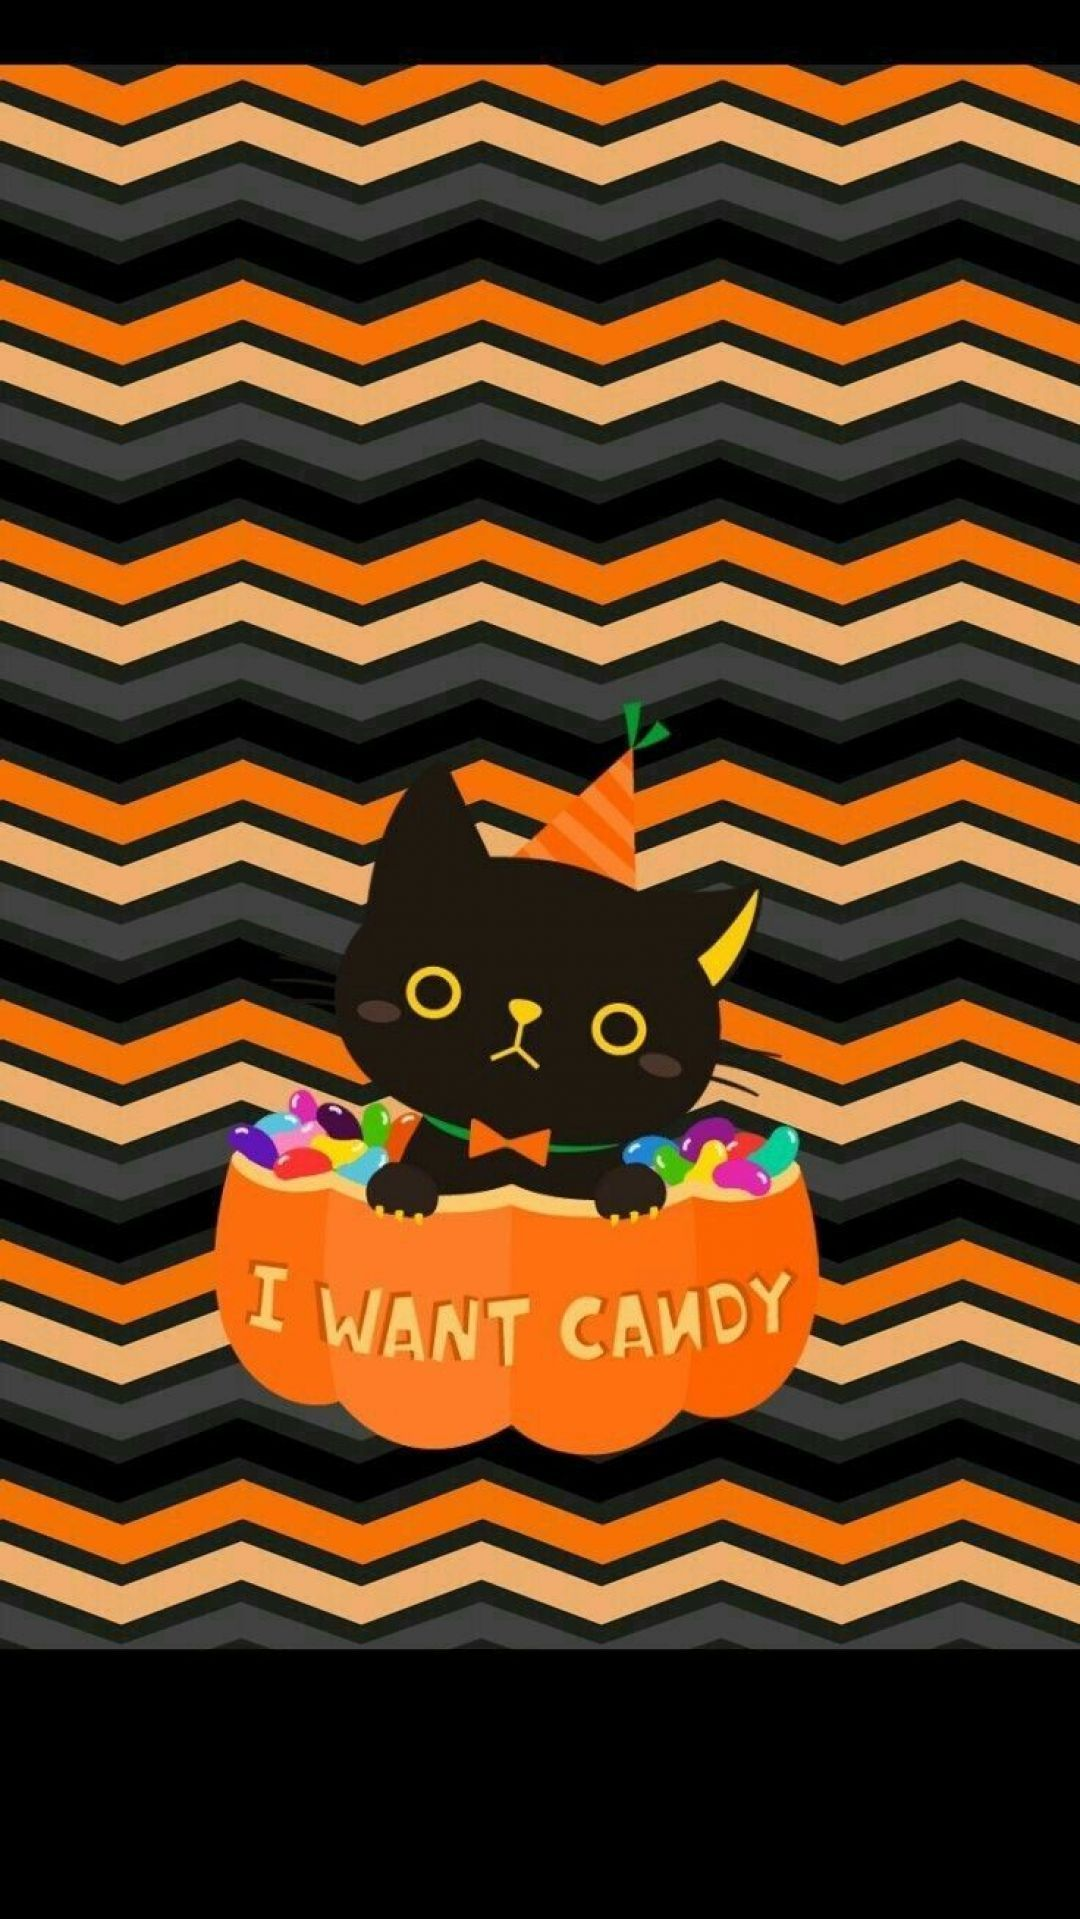 13285 3d Abstract Images Hd Photos 1080p Wallpapers Android Iphone 2020 In 2020 Halloween Wallpaper Iphone Halloween Wallpaper Cute Iphone Wallpaper Cat